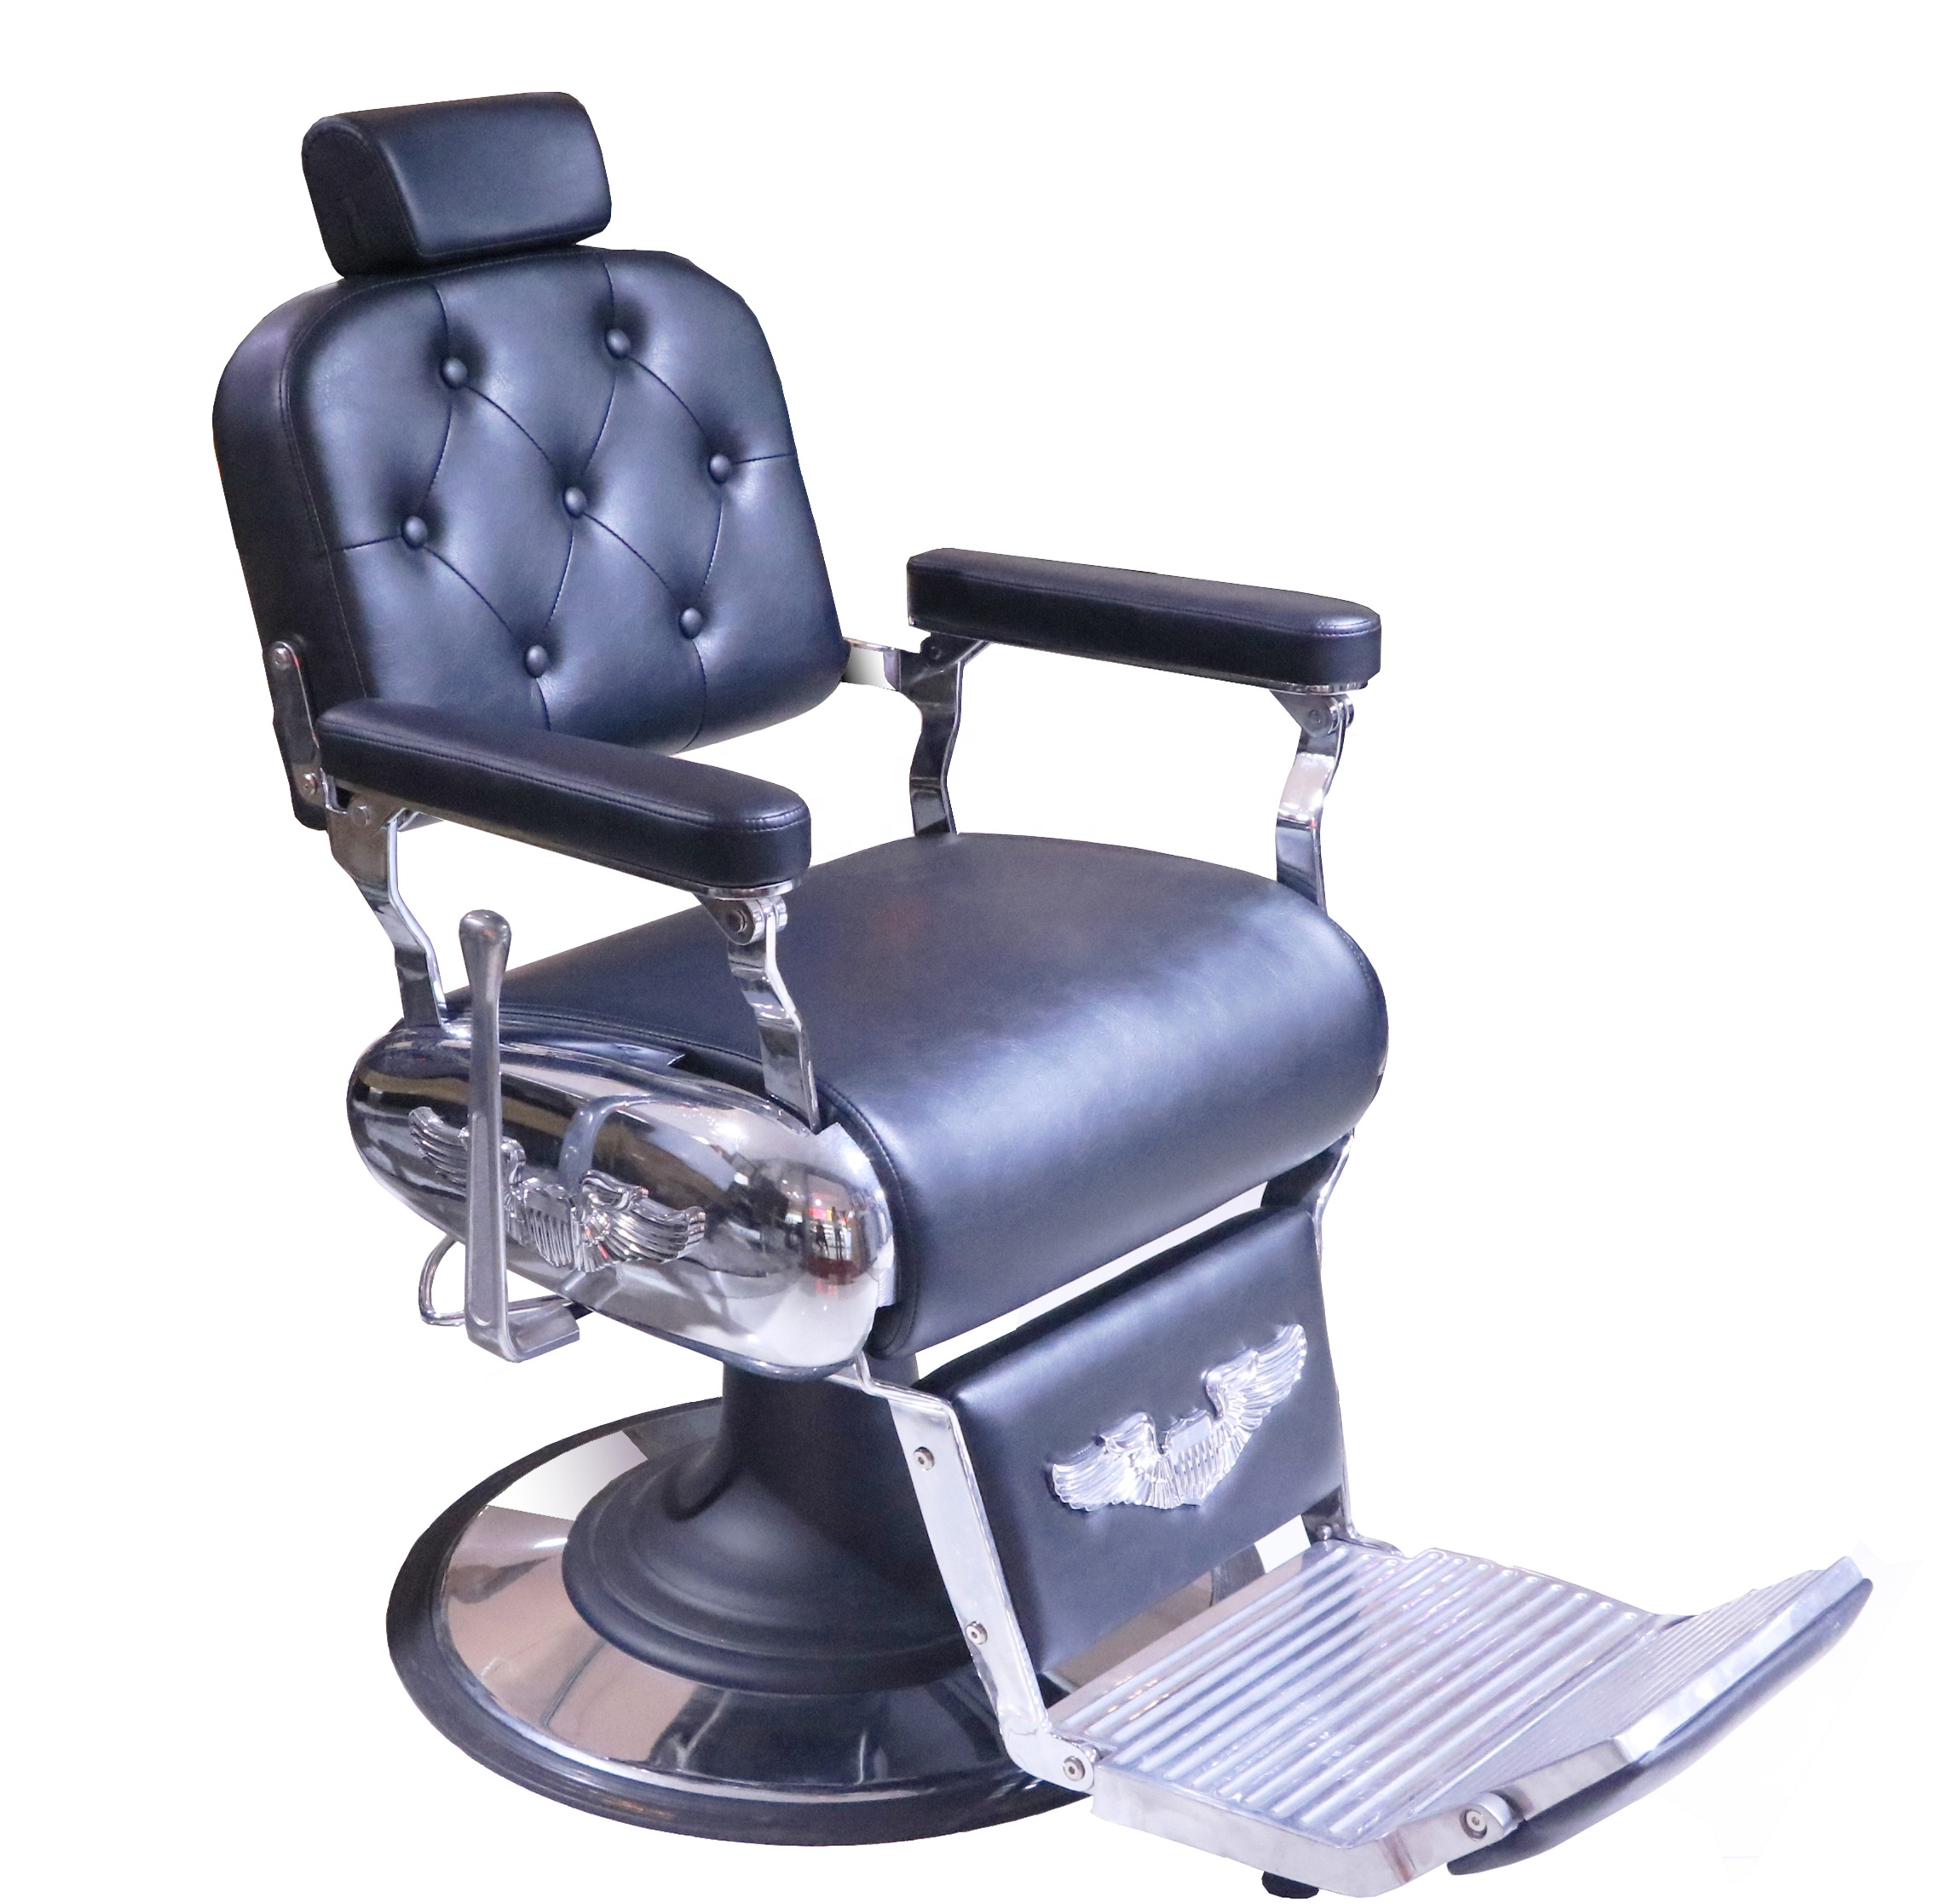 barber chair salon beauty spa shampoo hair styling equipment hot selling portable vintage style